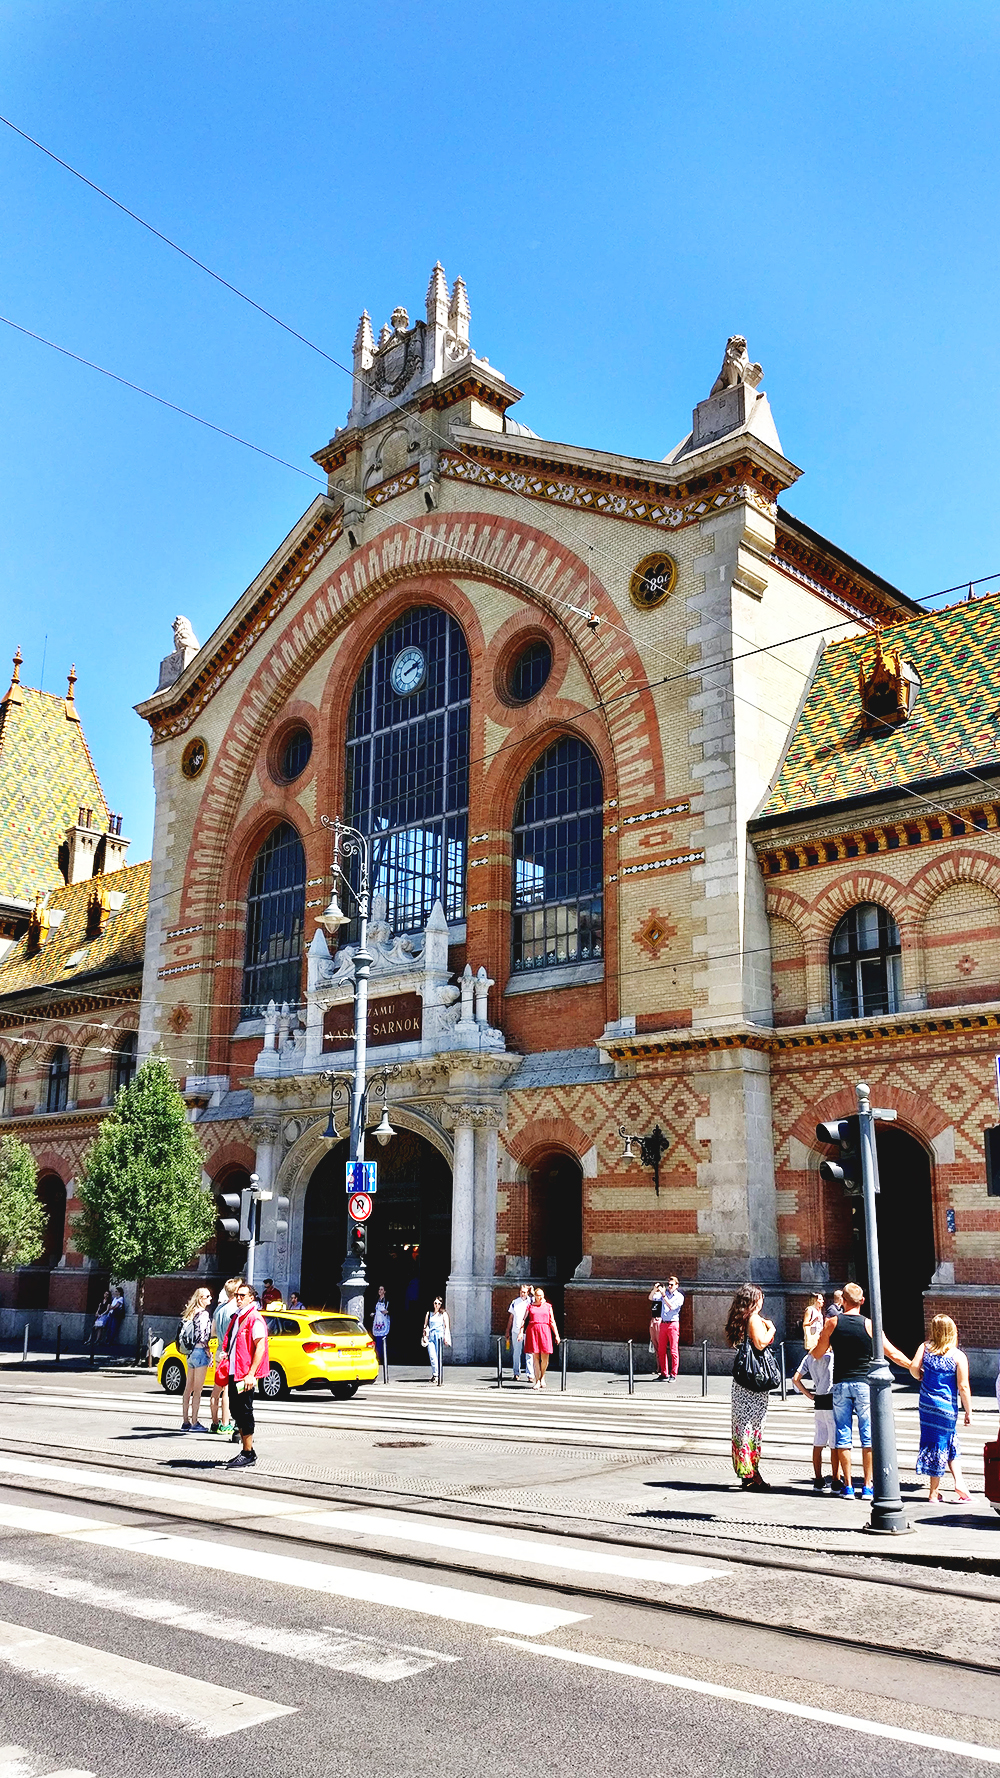 Discover the Great Market Hall - Budapest bucket list - Top things to do in Budapest   Aliz's Wonderland #travel #Budapest #bucketlist #Budapestbucketlist #printable